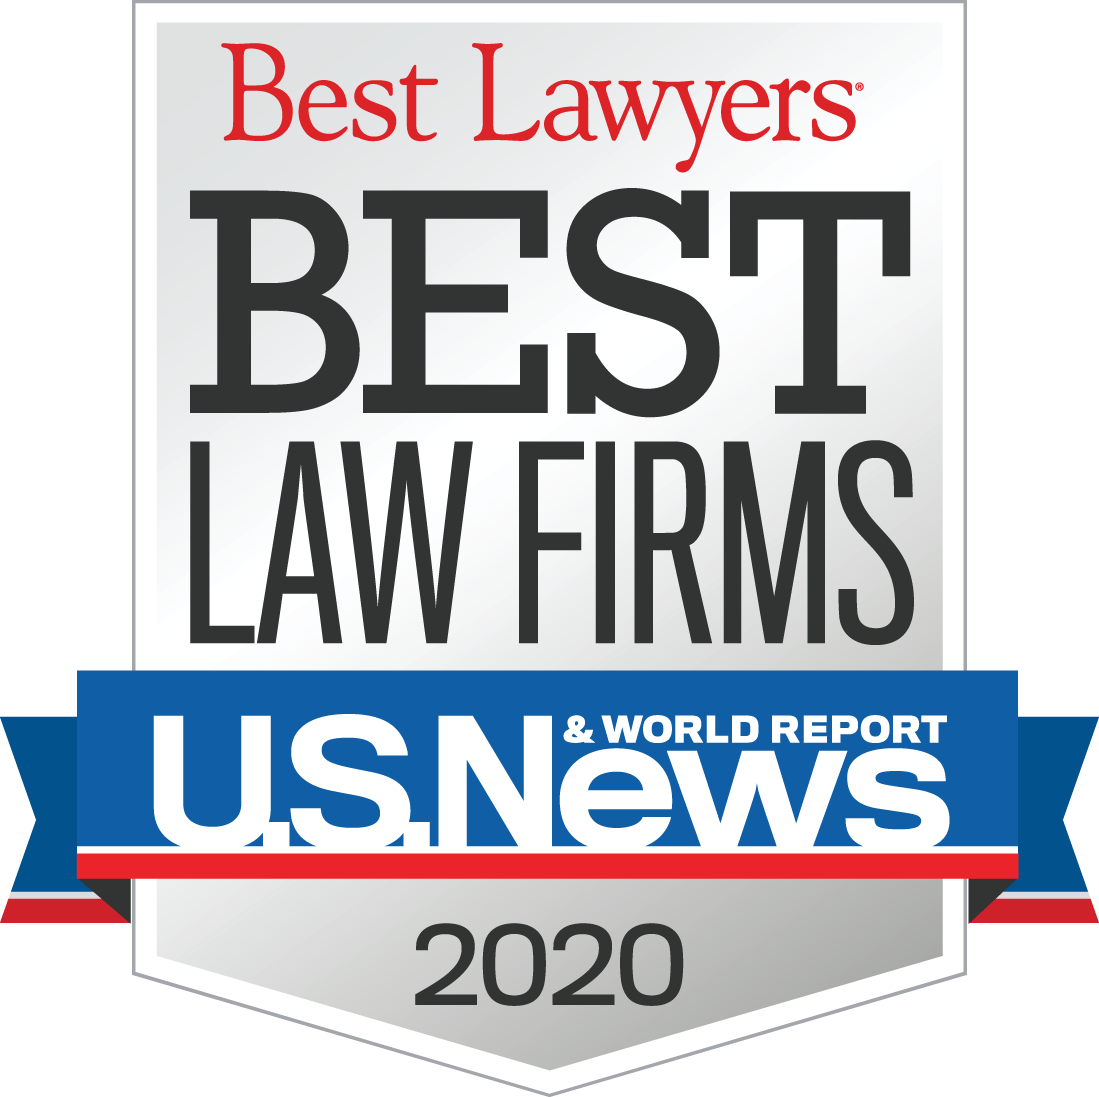 Best Law Firm 2020 - Jackson Lewis PC